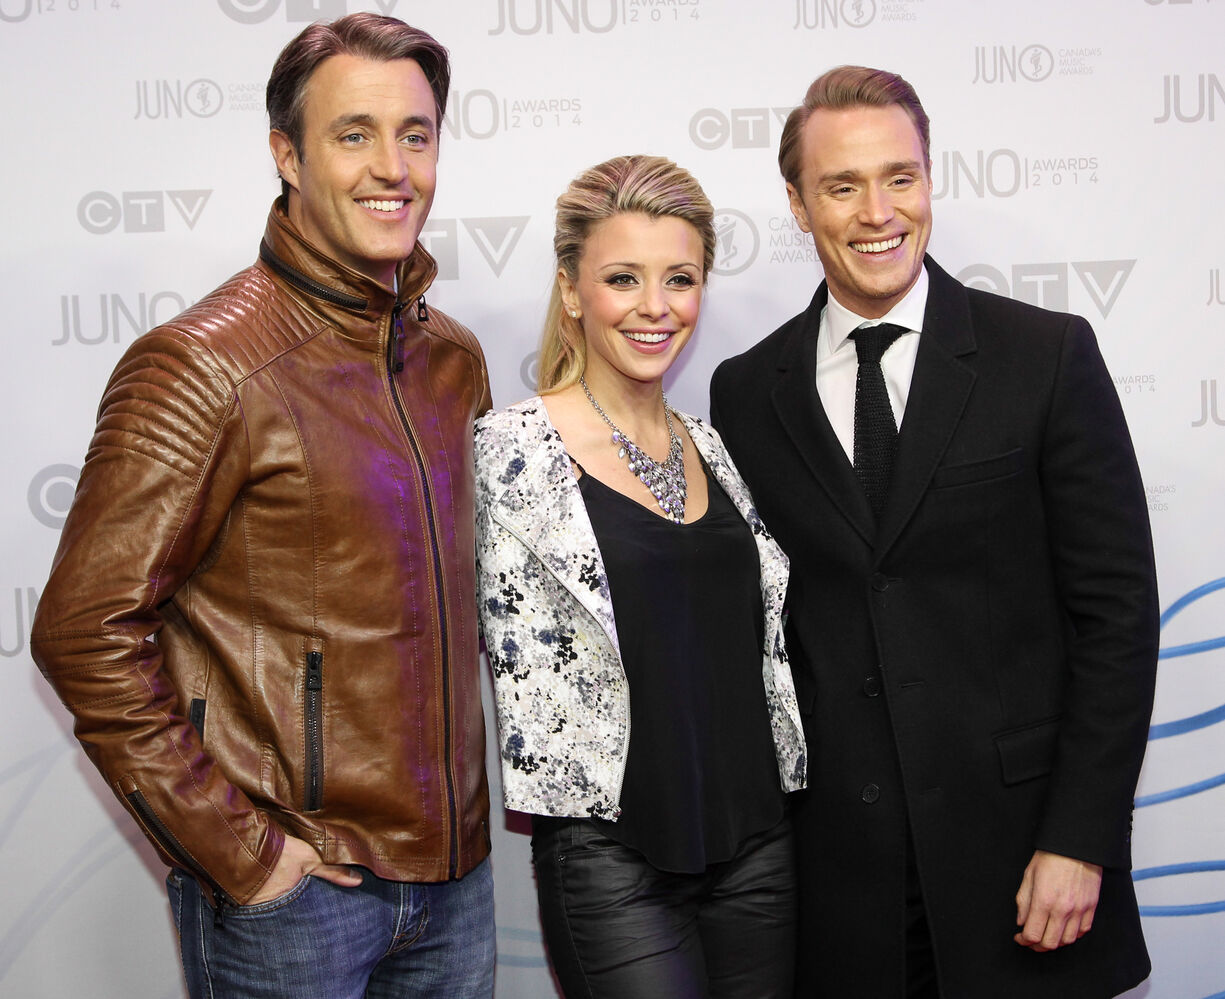 CTV's eTalk hosts Ben Mulroney, Danielle McGimsie and Devon Soltendieck arrive on the Junos 2014 red carpet.